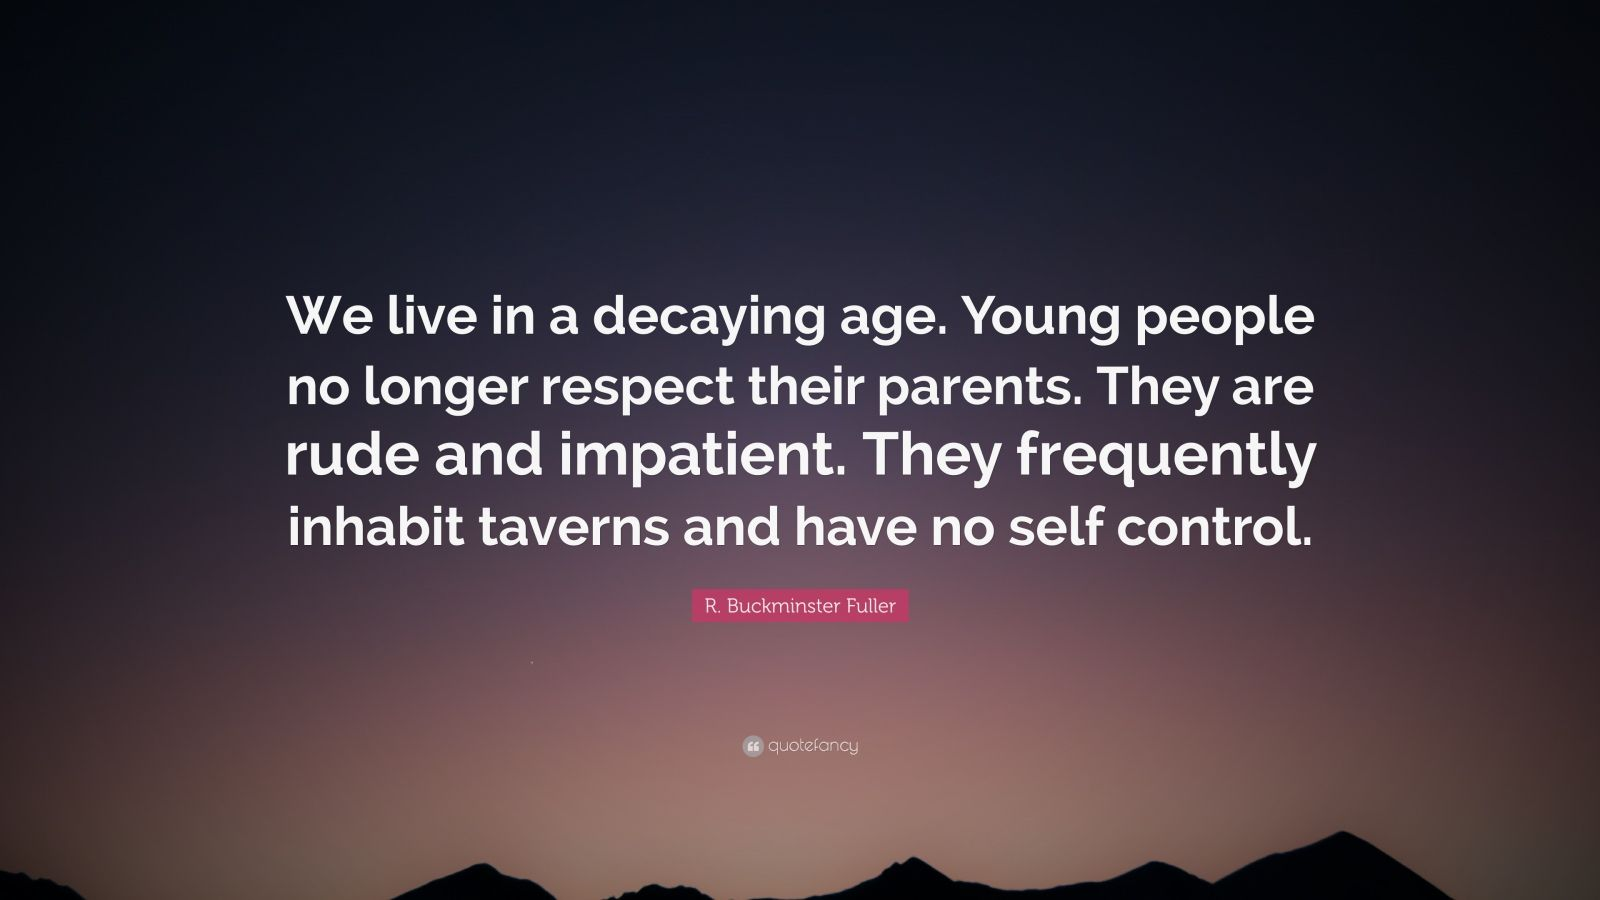 "R. Buckminster Fuller Quote: ""We live in a decaying age. Young people no longer respect their parents. They are rude and impatient. They frequently inhabit taverns and have no self control."""